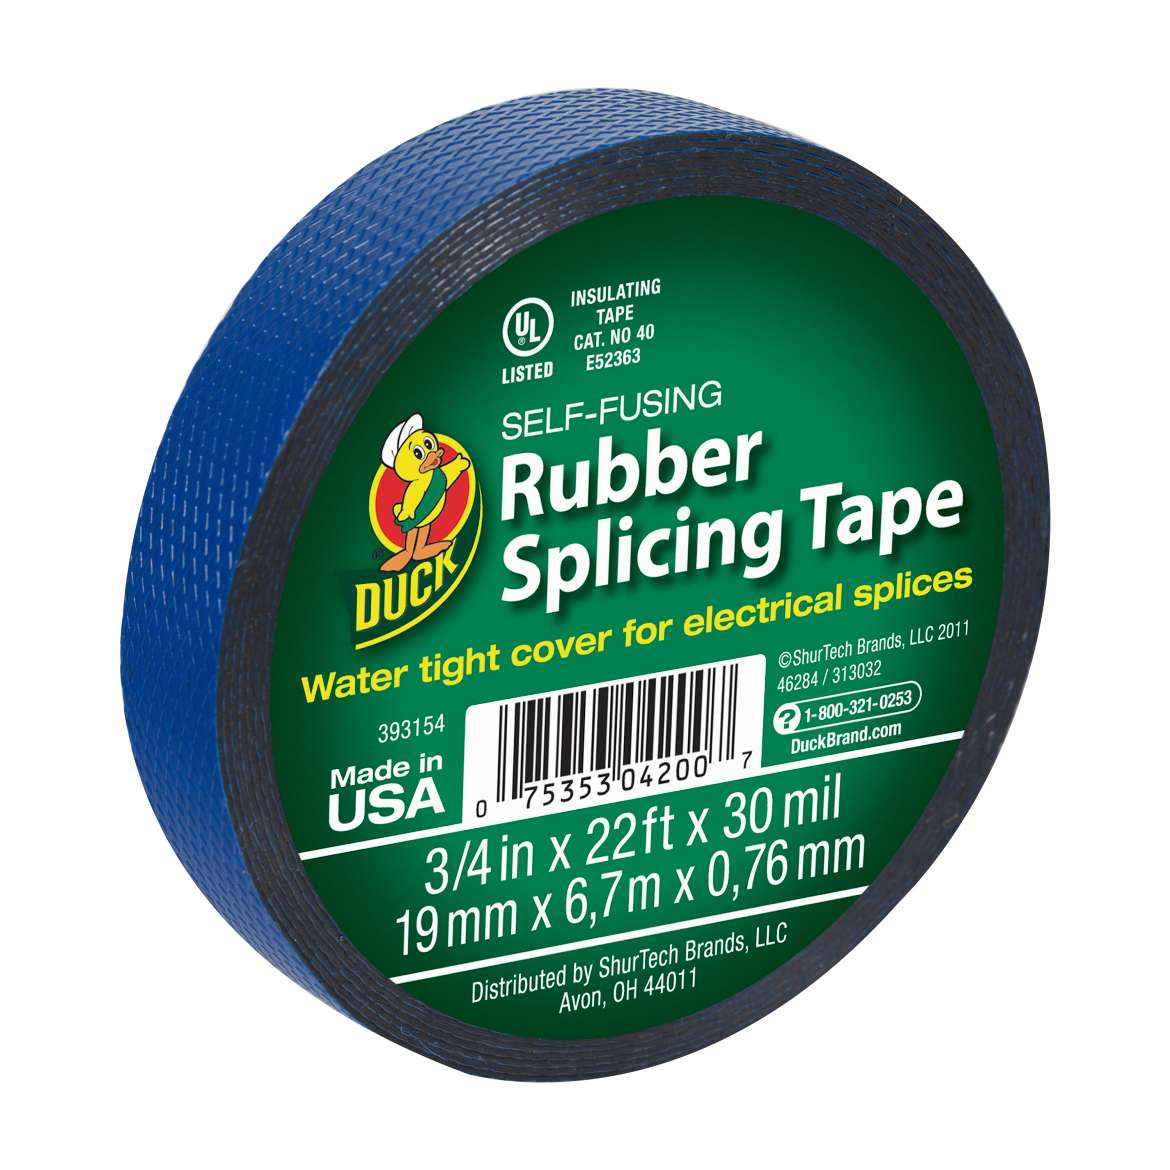 Duck® Brand Self-Fusing Rubber Splicing Tape - Blue, .75 in. x 22 ft. x 30 mil. Image